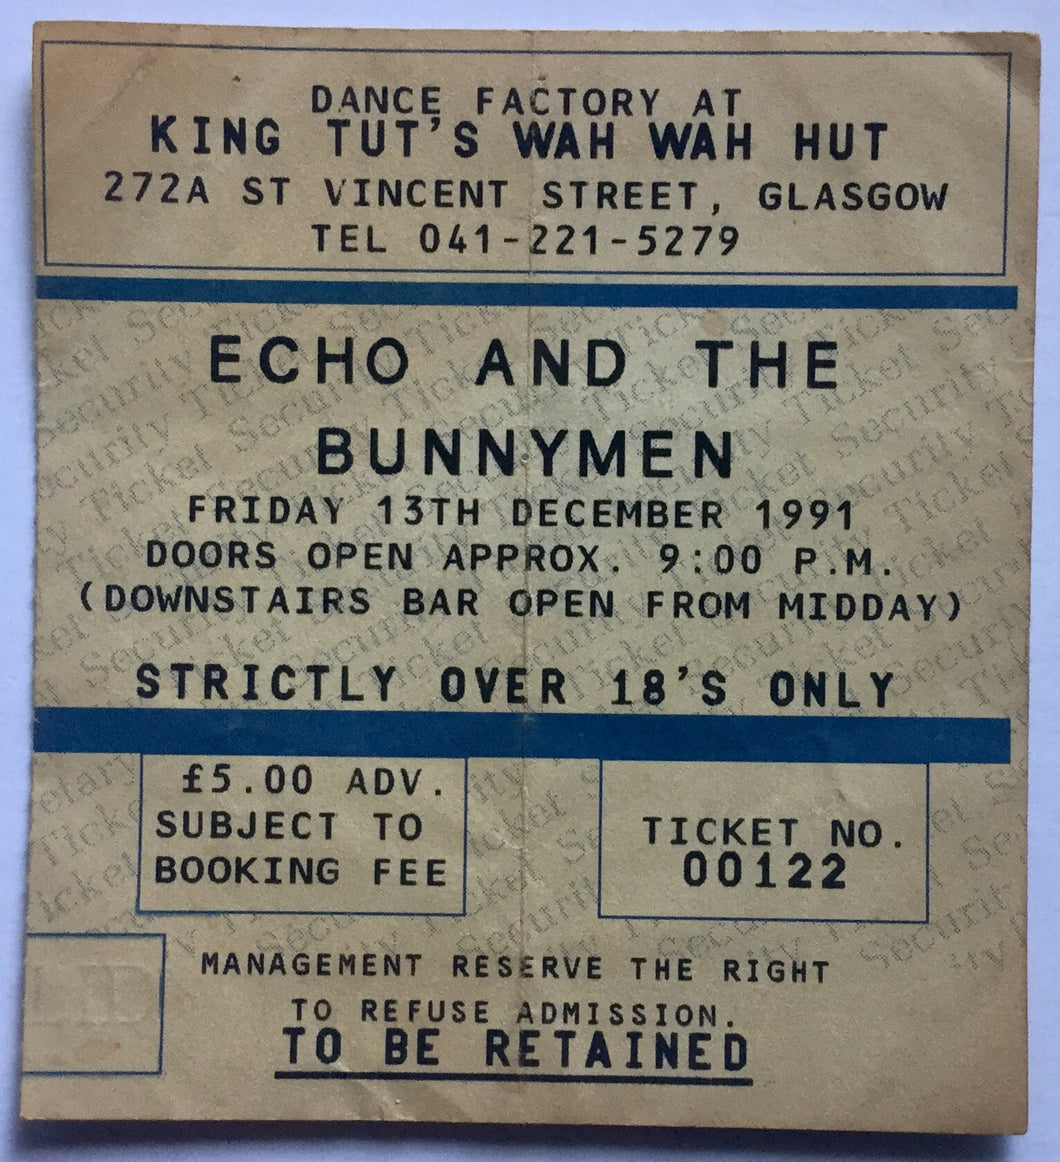 Echo & The Bunnymen Original Used Concert Ticket King Tuts Wah Wah Hut Glasgow 13th Dec 1991